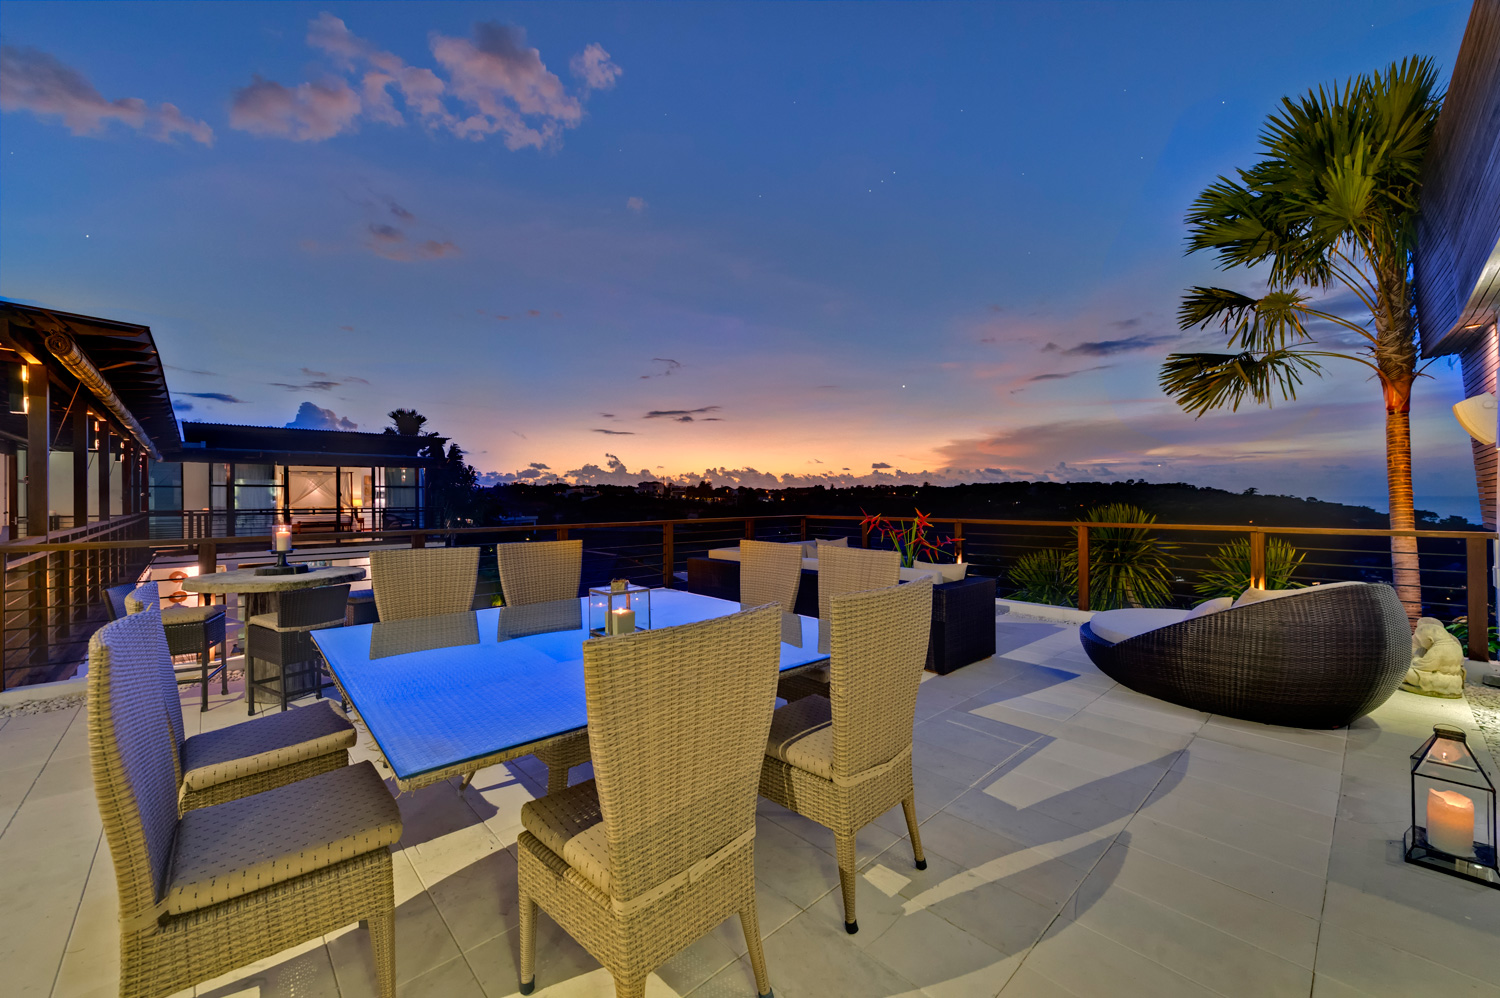 Villa Jamalu -  View from Rooftop dining terrace at dusk